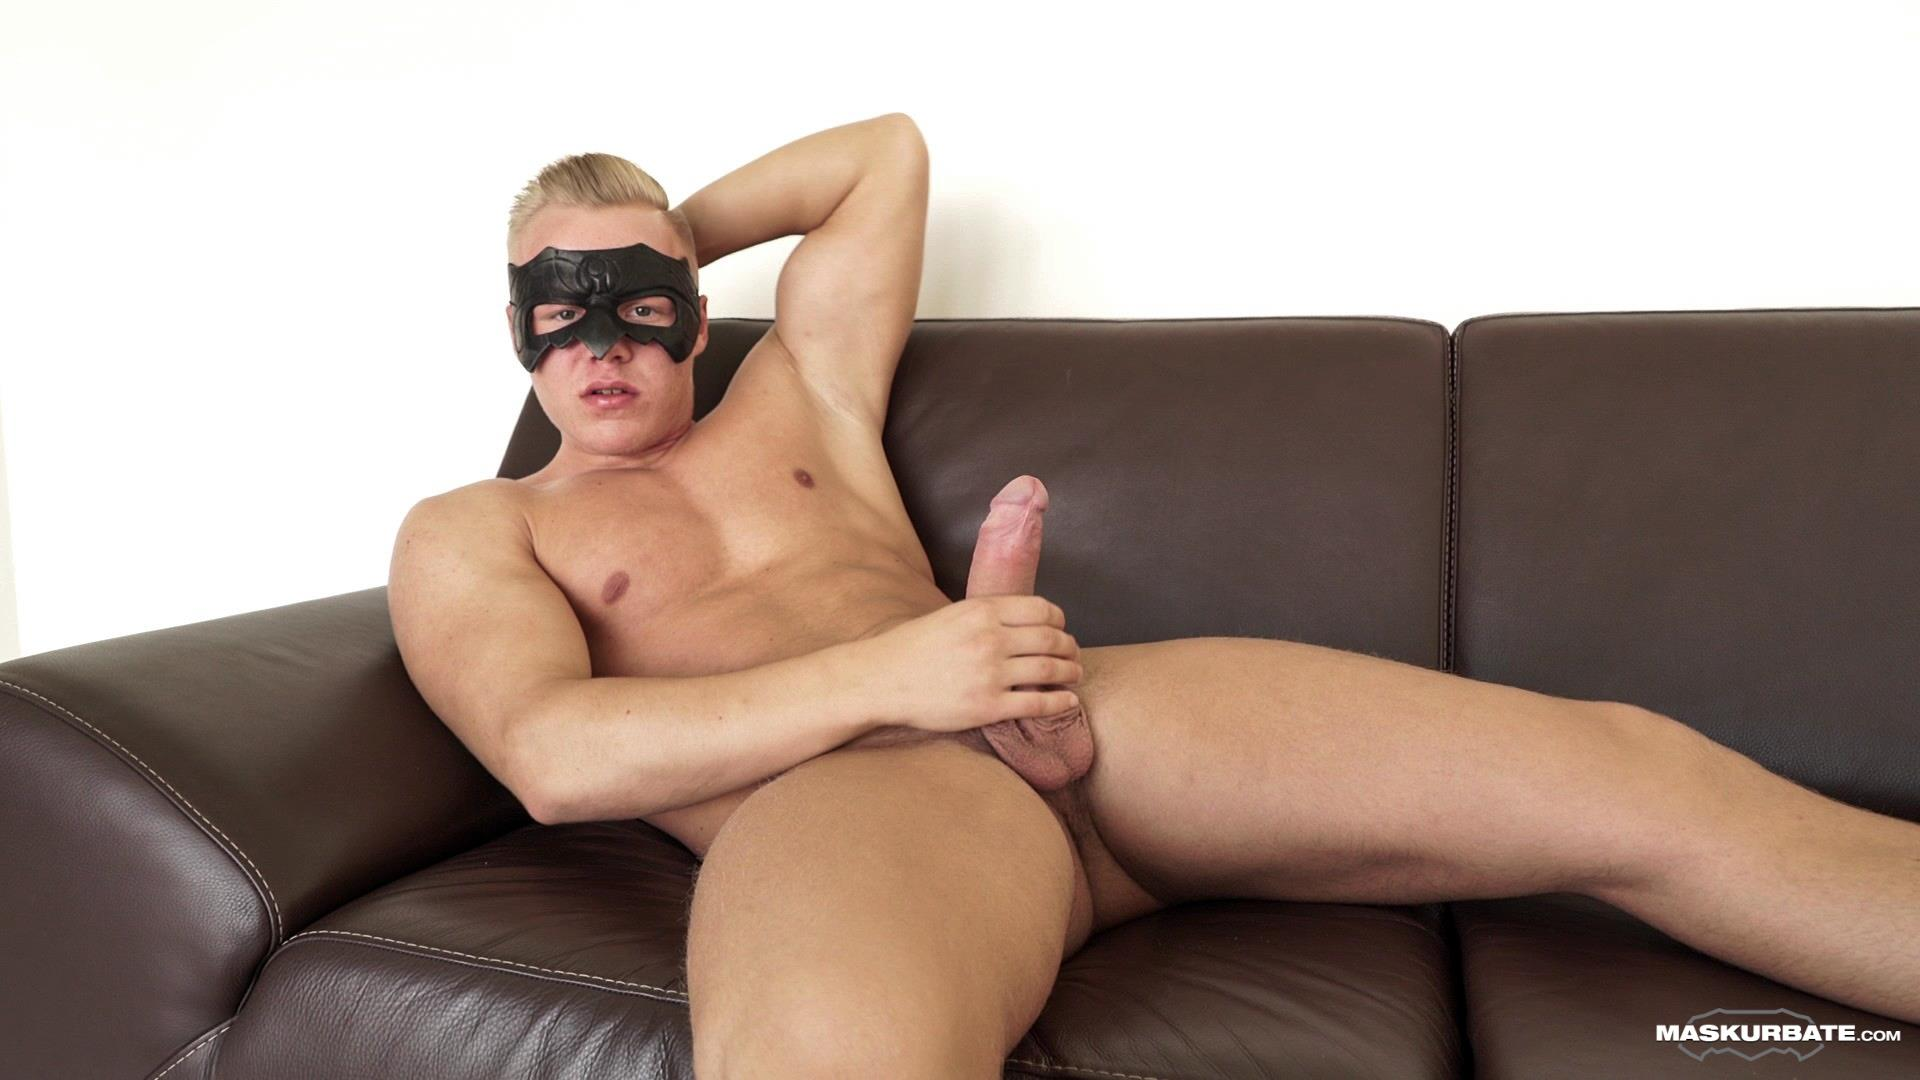 Maskurbate-Mickey-Big-Uncut-Cock-Muscle-Hunk-Jerking-Off-Video-03 Big Uncut Cock Blond Muscle Hunk Auditions For Gay Porn